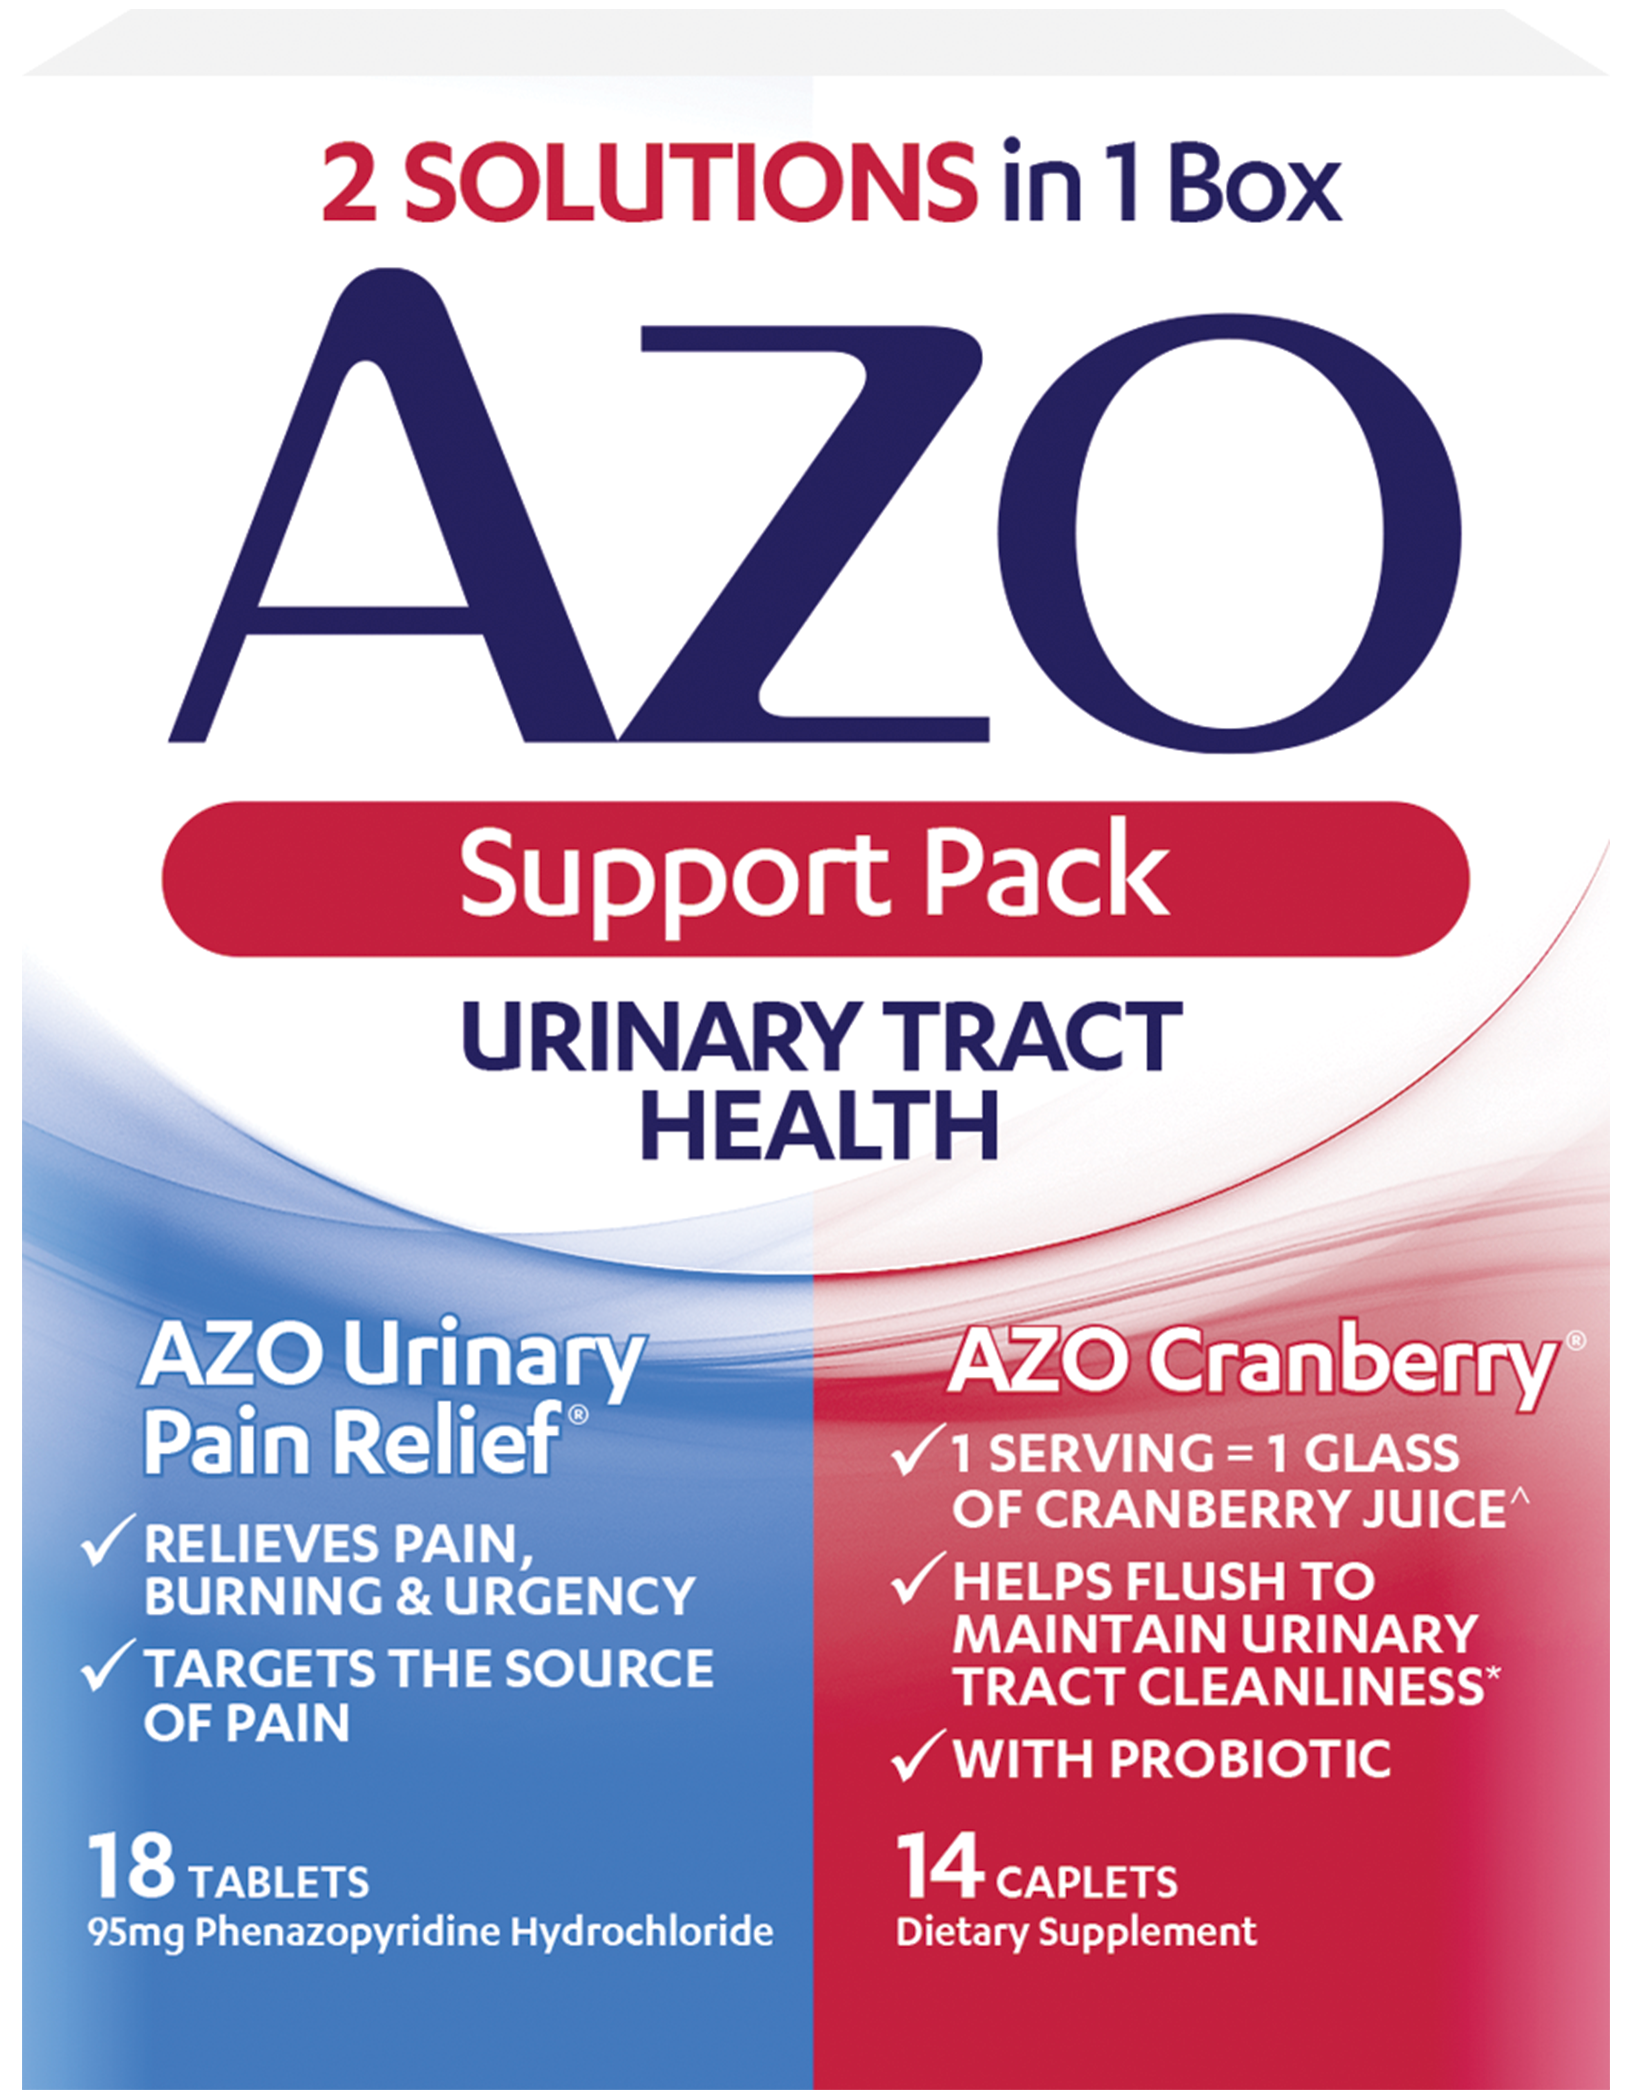 Our AZO Urinary Tract Health Pack Offers Relief & Support